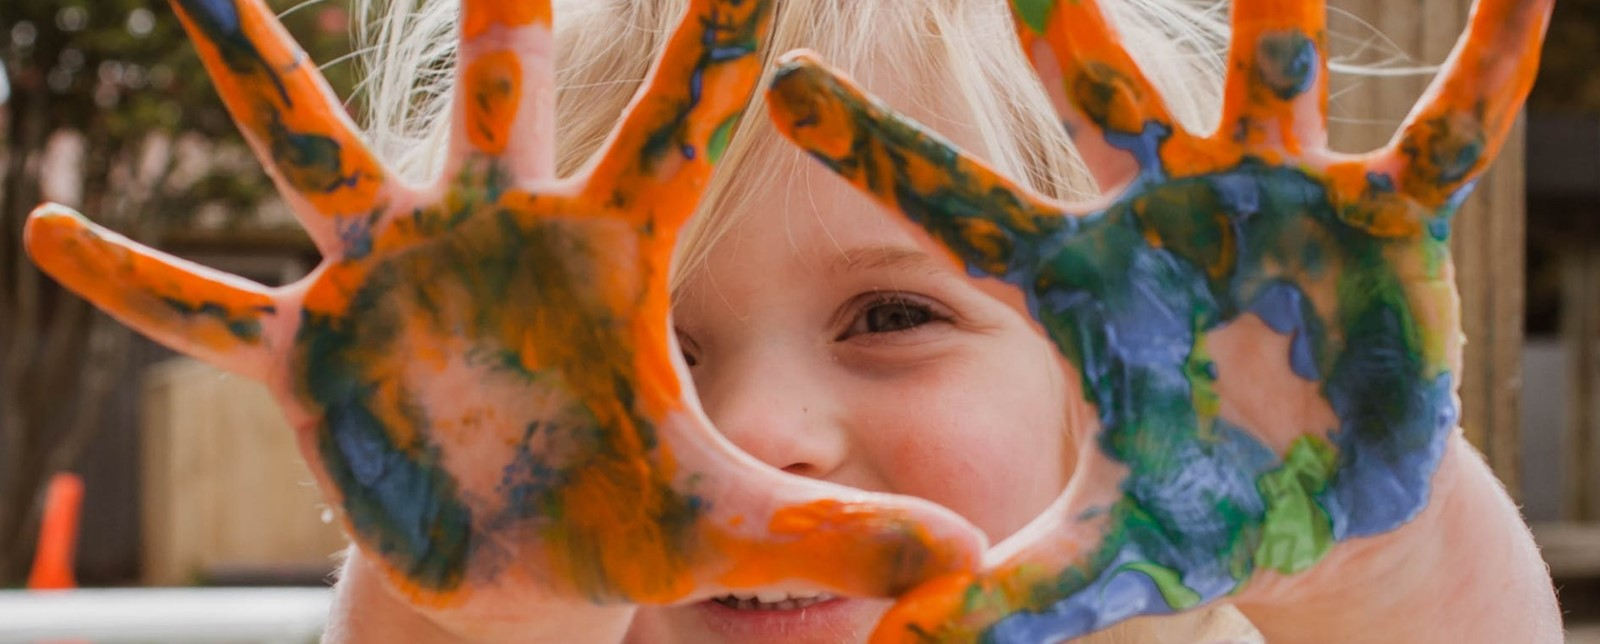 A girl holding paint stained hands in front of her face